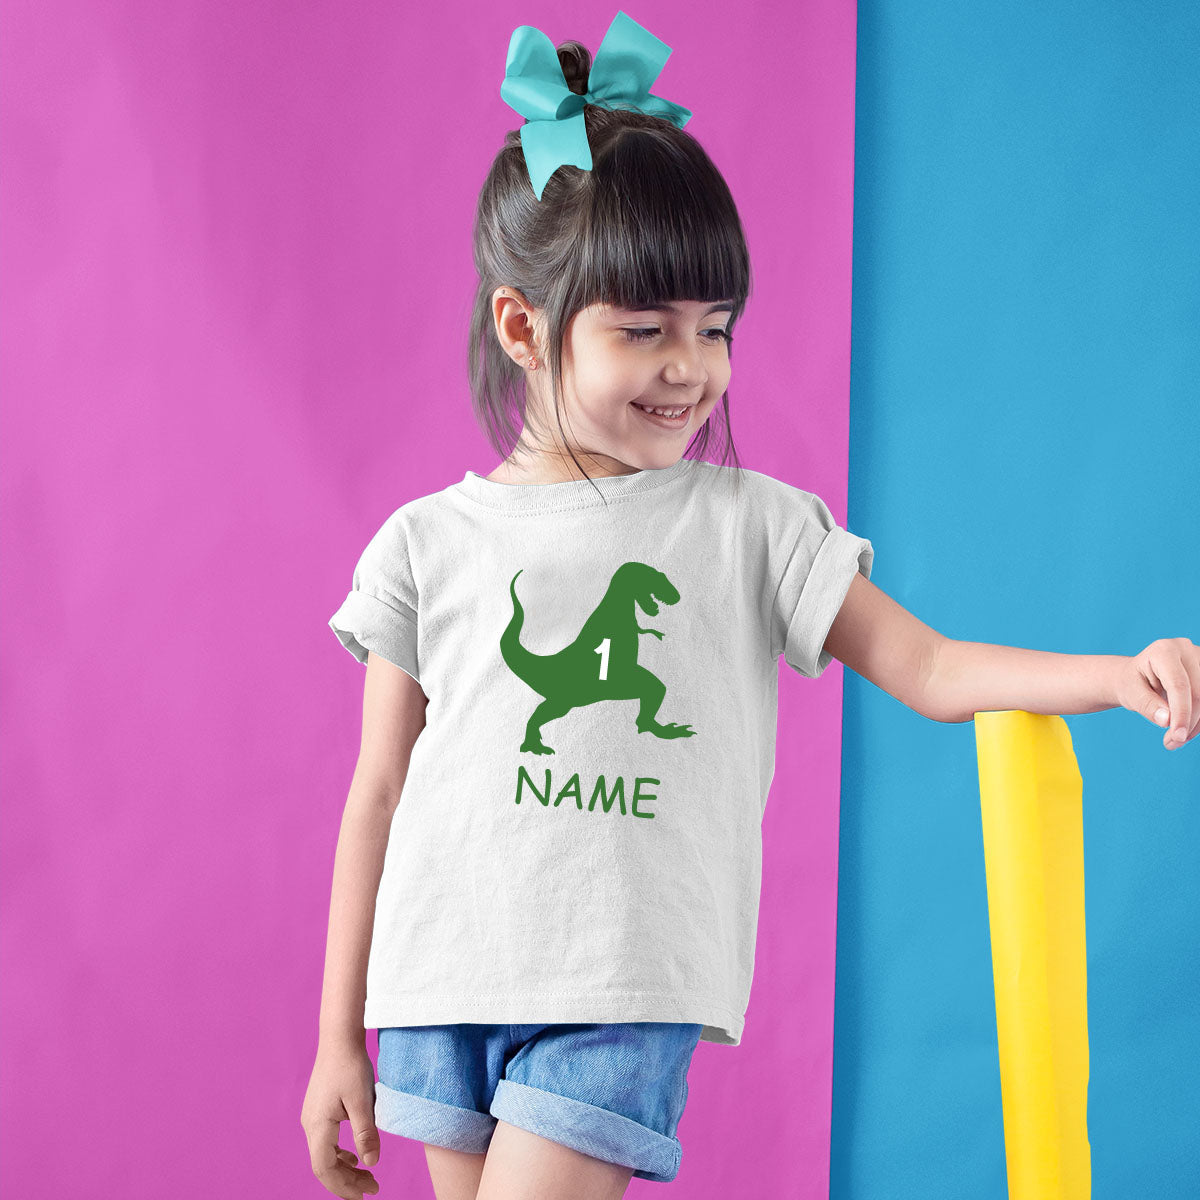 Sprinklecart Make Your Birthday Party Unique with Dinosaur Birthday T Shirt 1st Birthday Dress